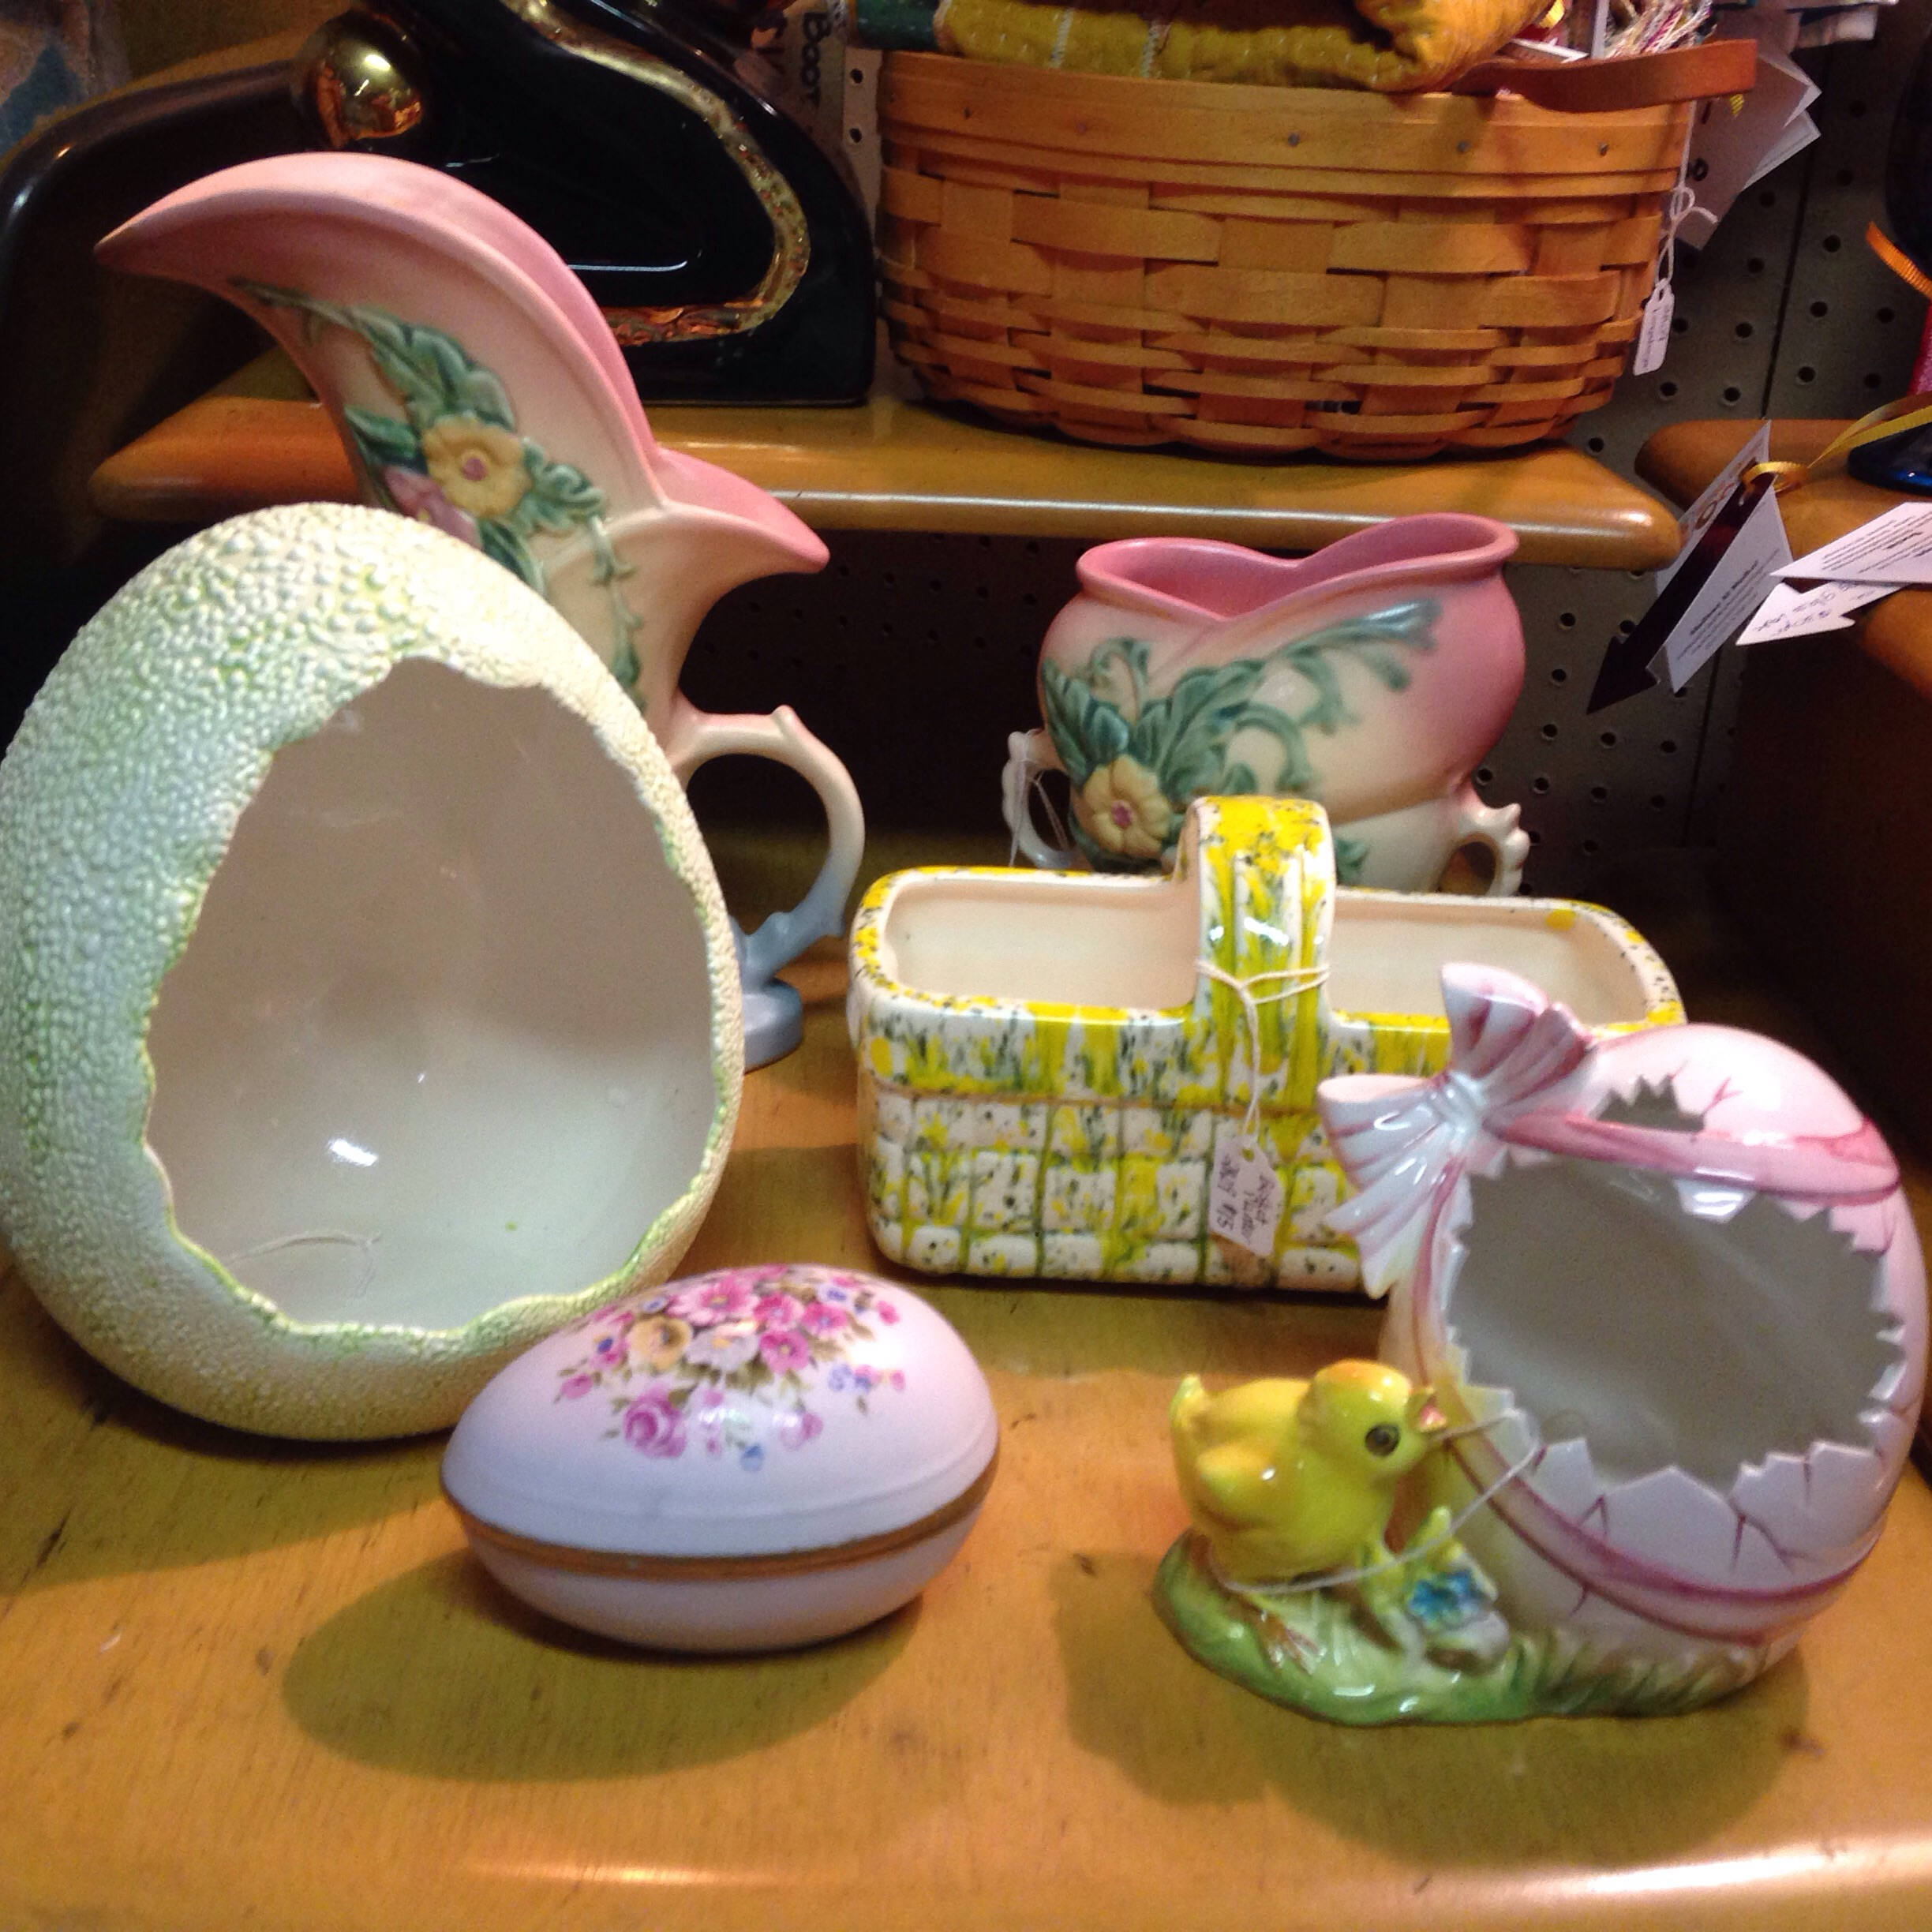 Easter goodies and Hull Art Pottery I just added.